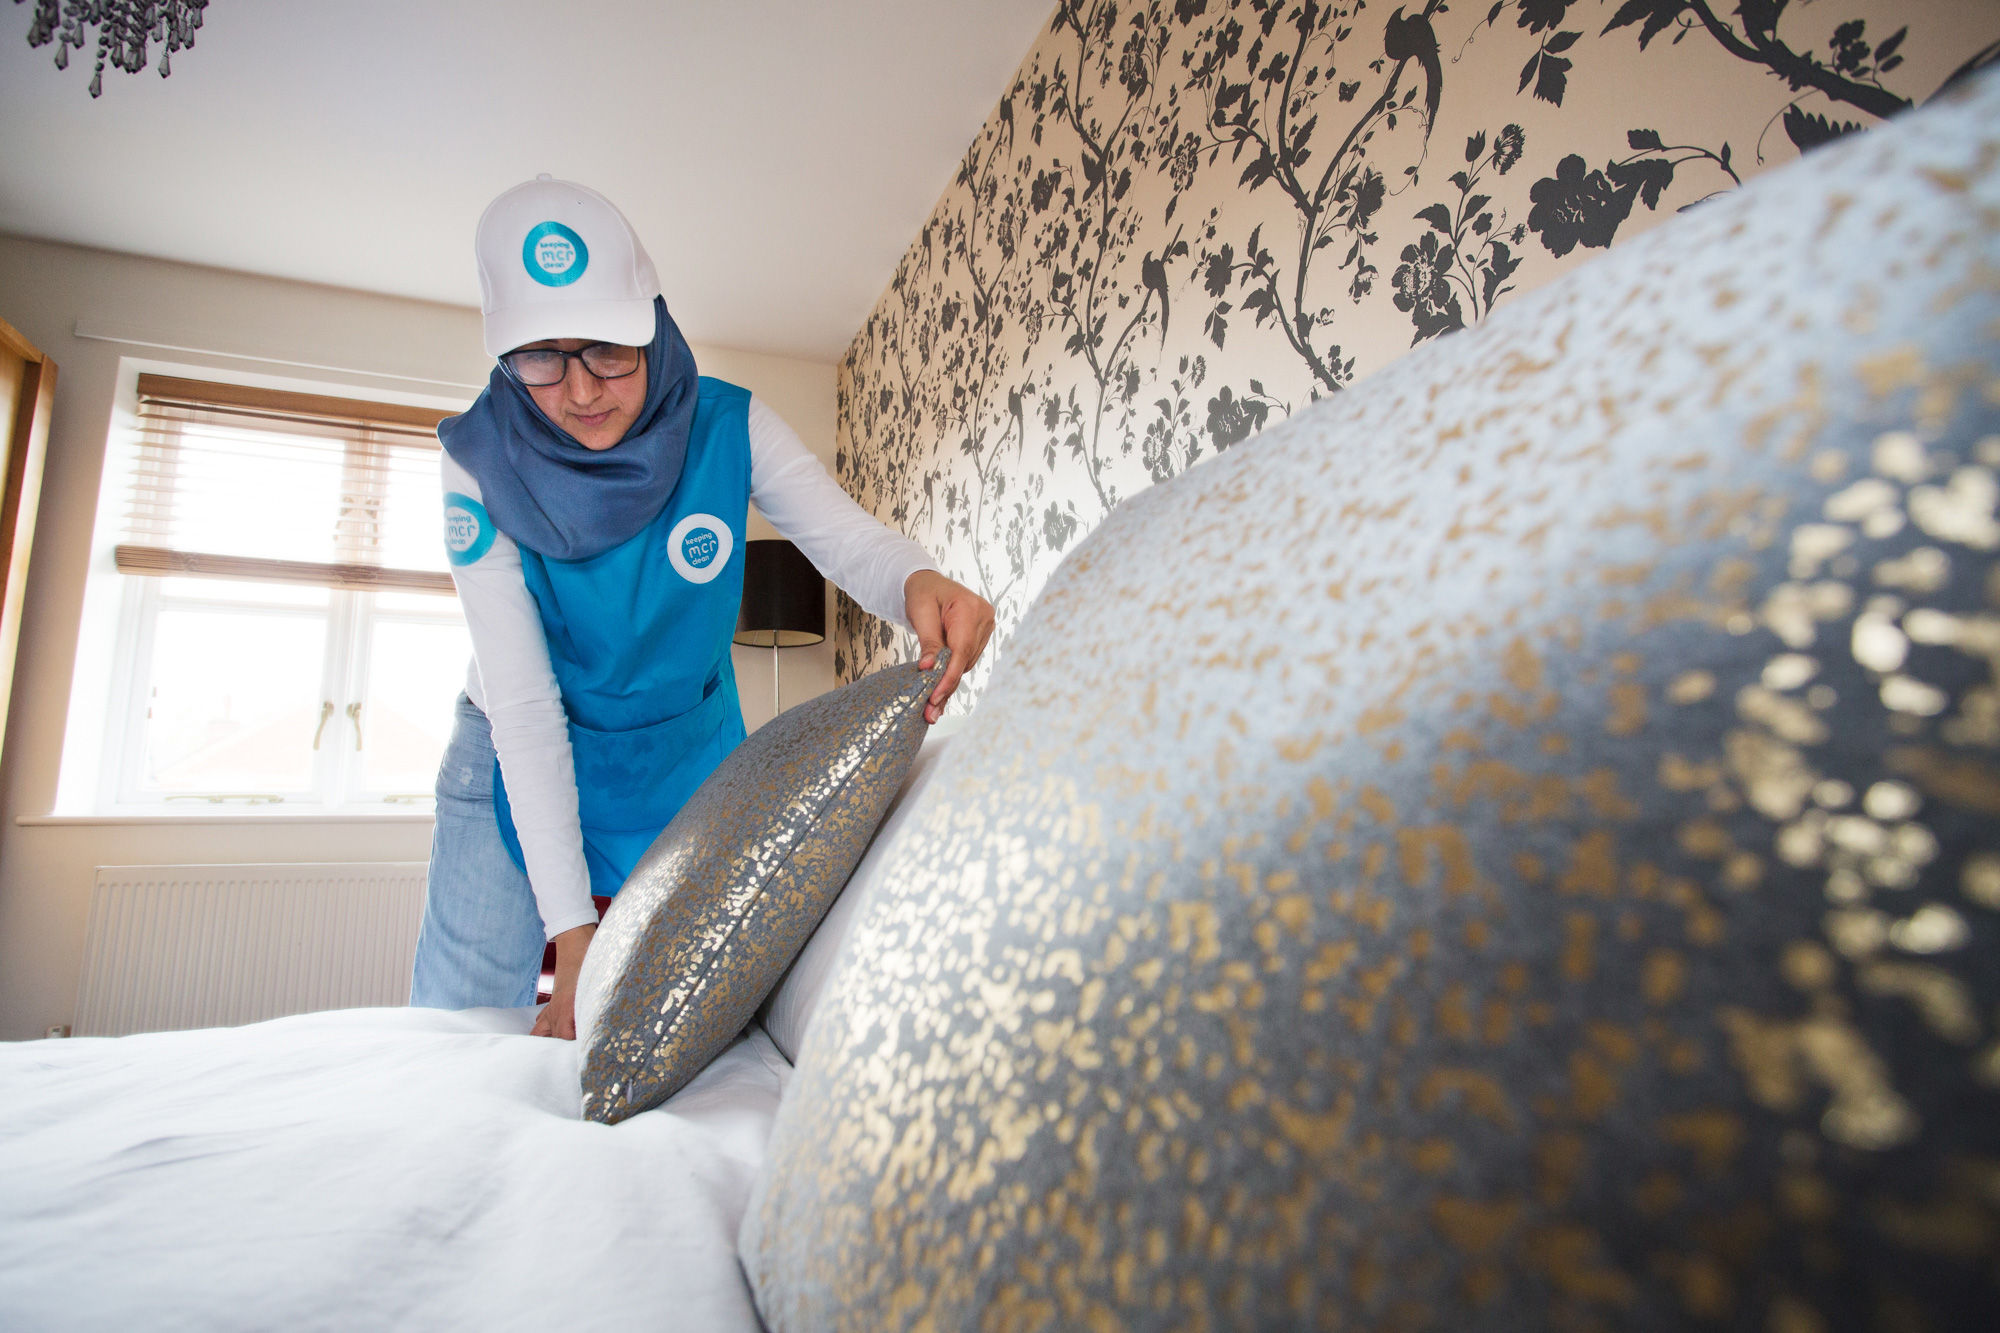 Professional cleaning services, professional cleaners, Manchester, Altrincham, Stockport